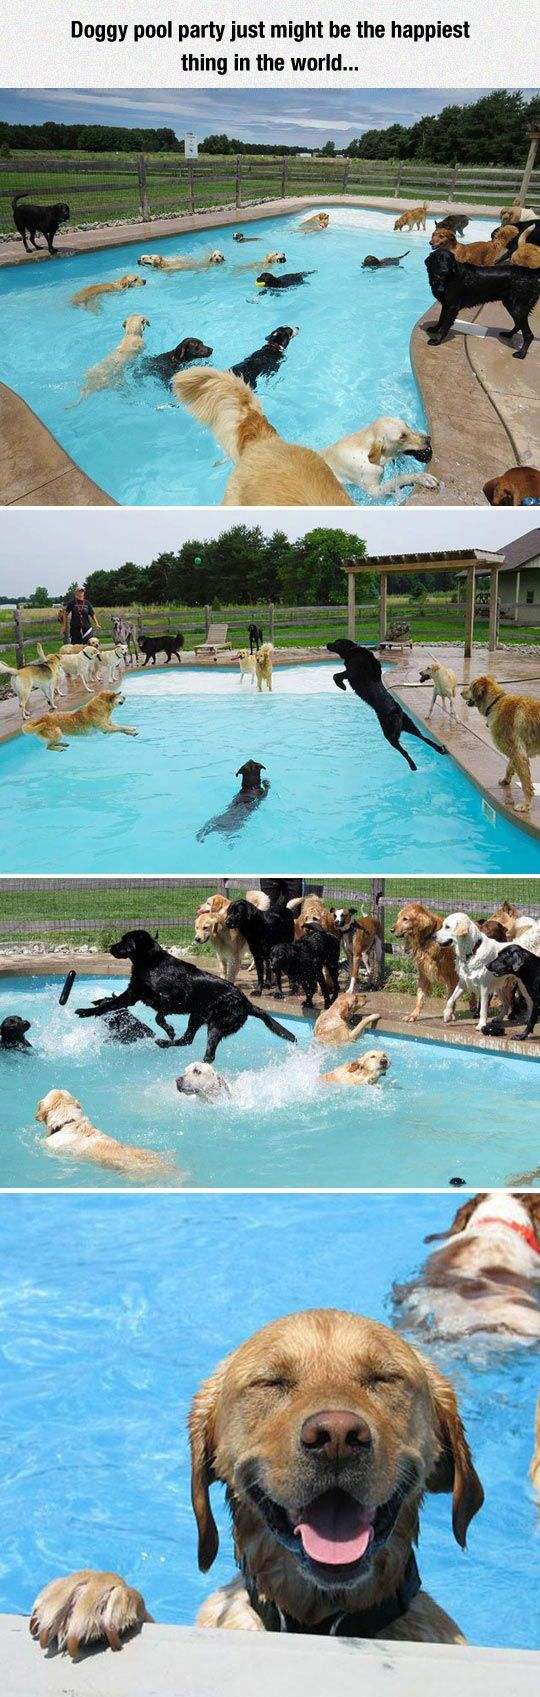 Dog Pool Party at this Day Care for Dogs